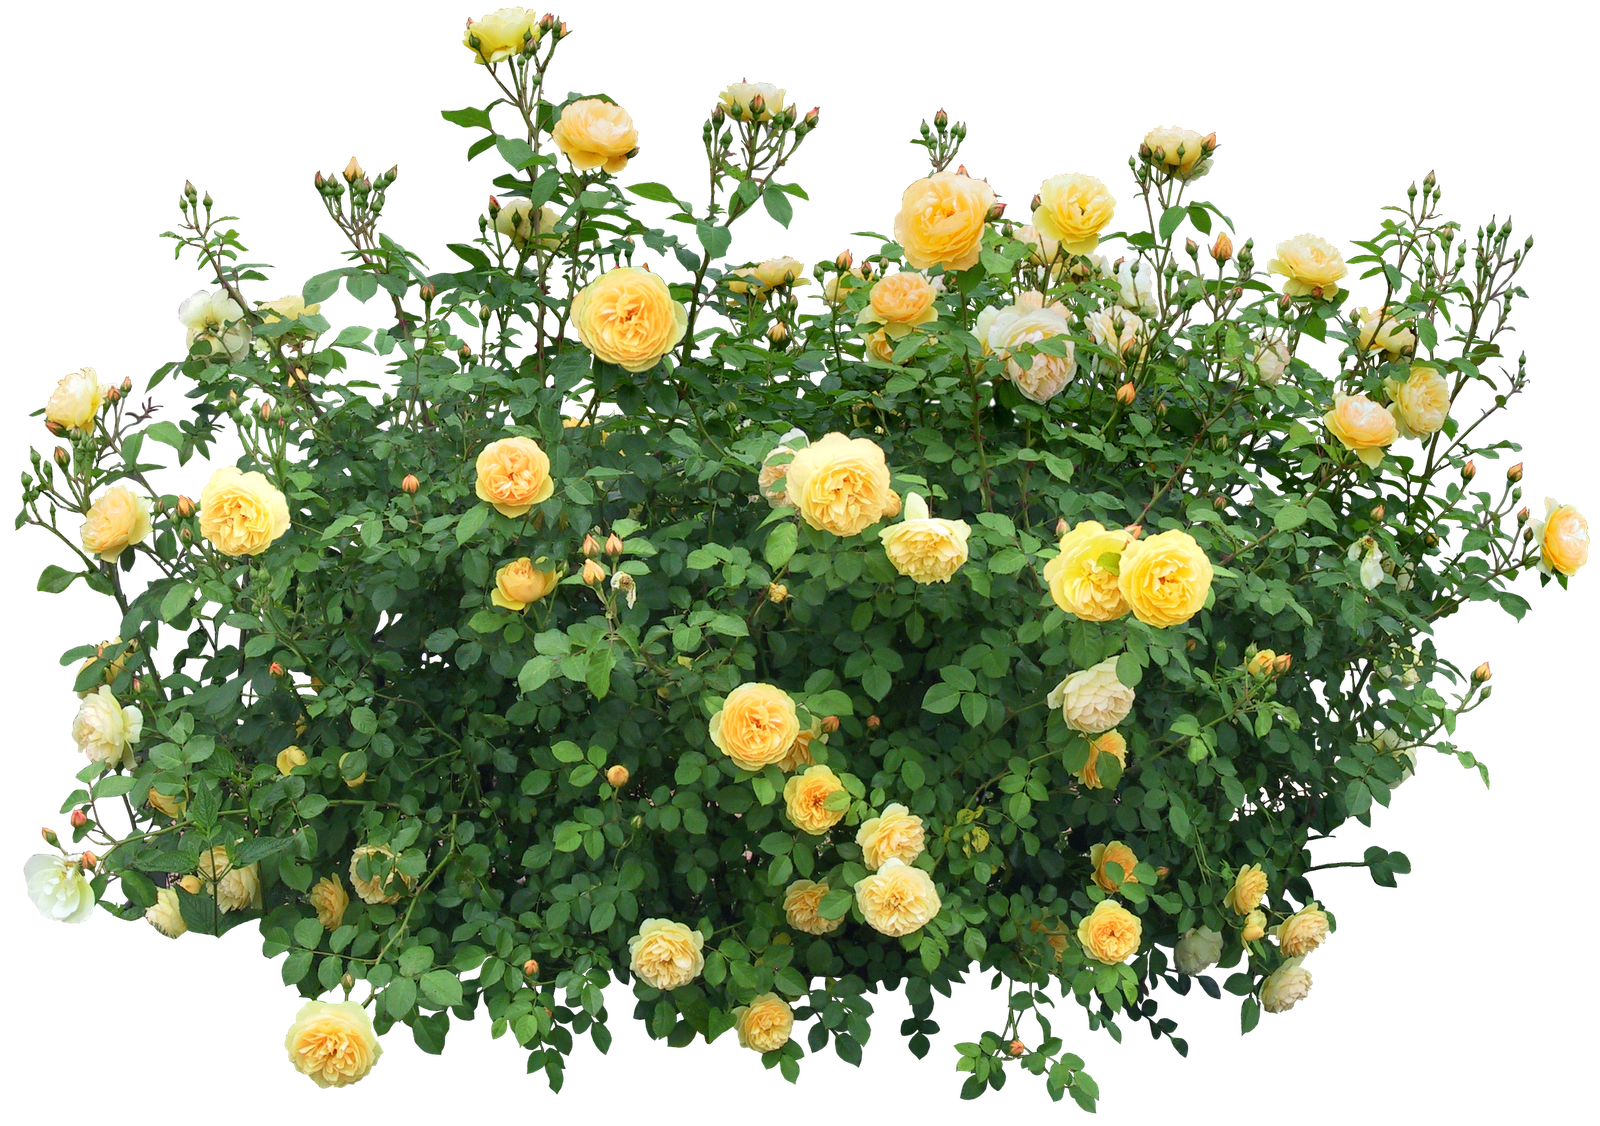 Flower plants png. Bushes images free download